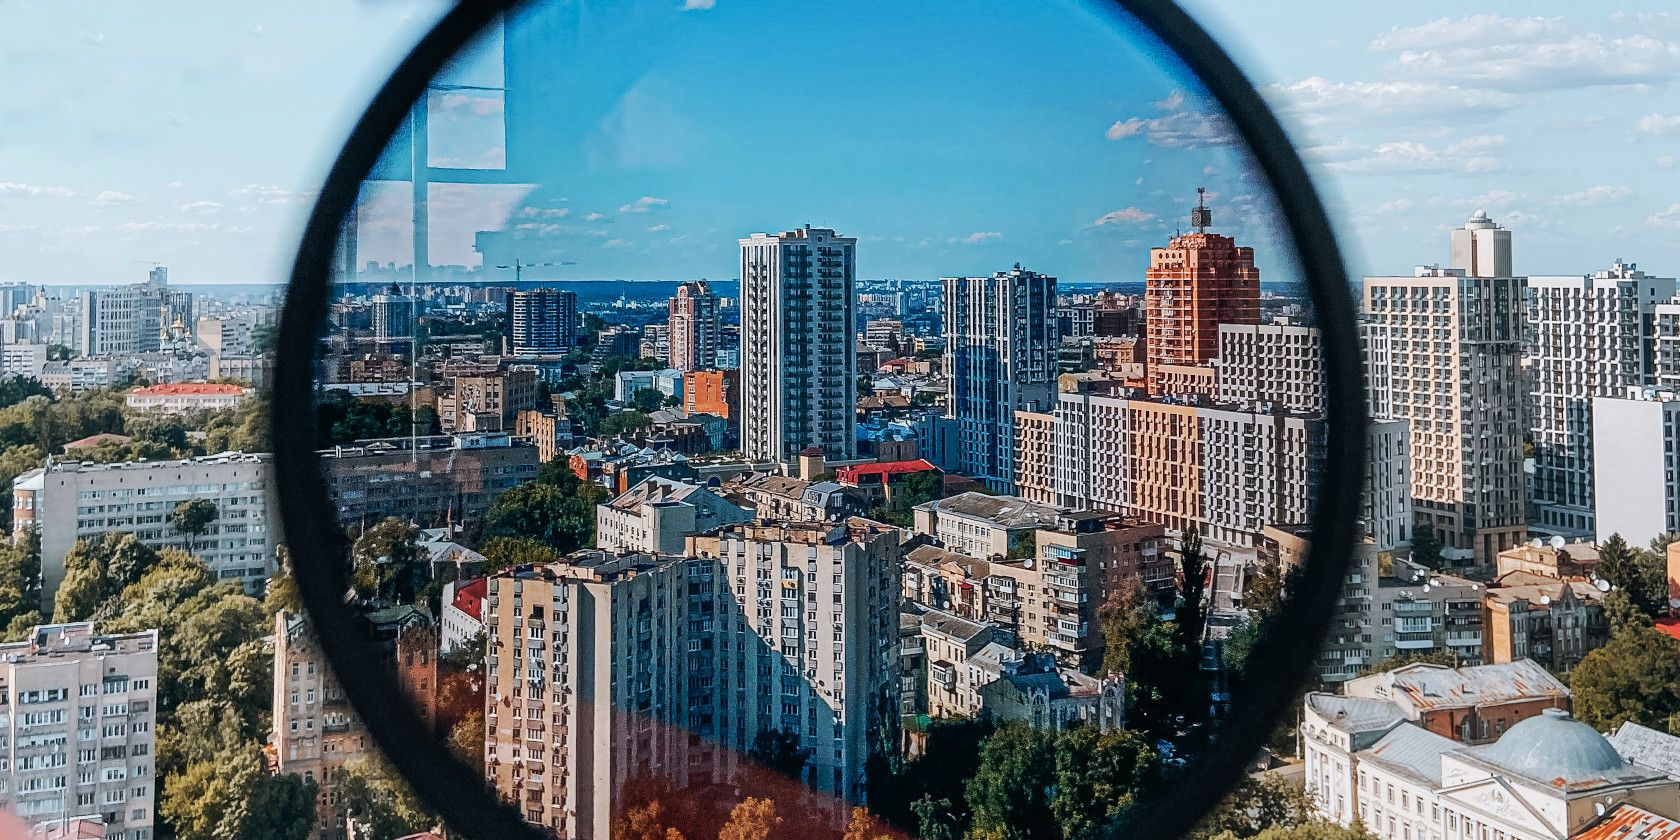 What Are Polarizing Filters in Photography?